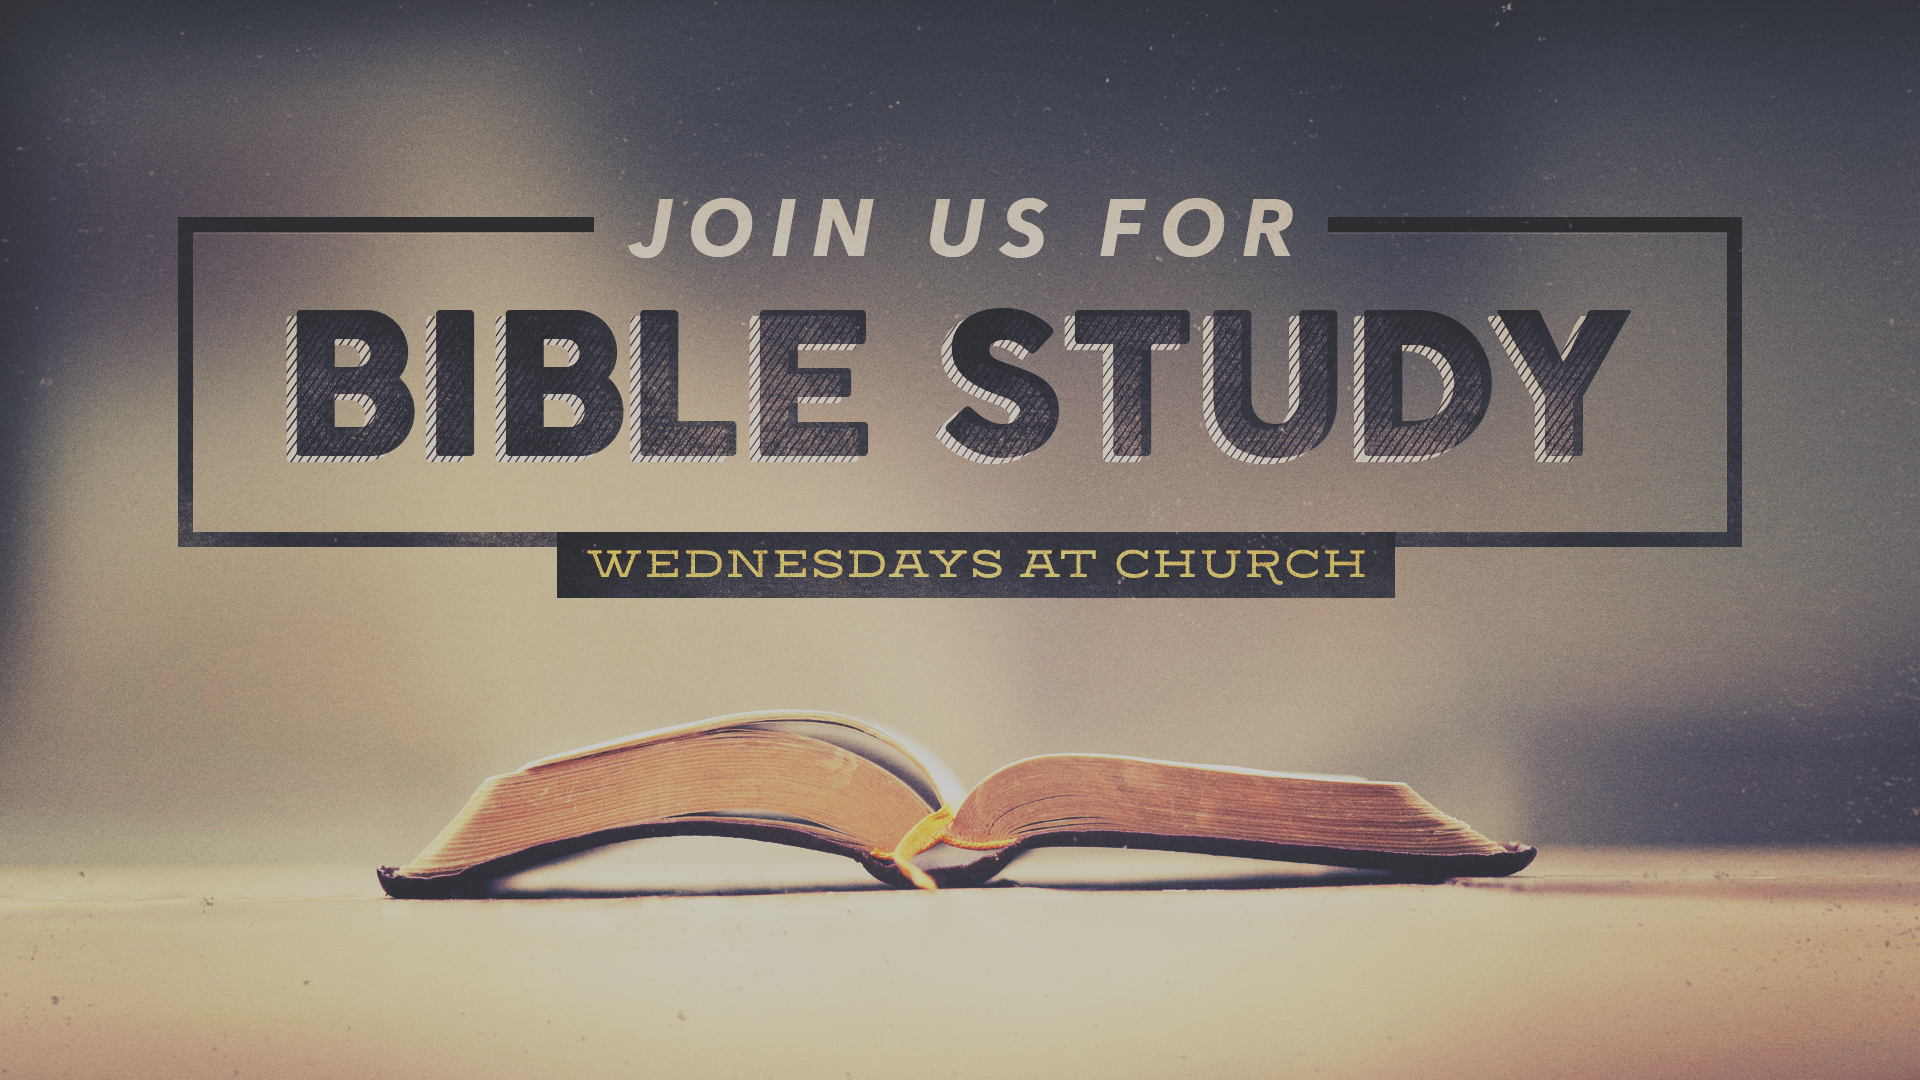 WEDNESDAY EVENINGS - 7PM  Please join us this Wednesday night for a time to grow in our faith and walk with the Lord.    Learn More →